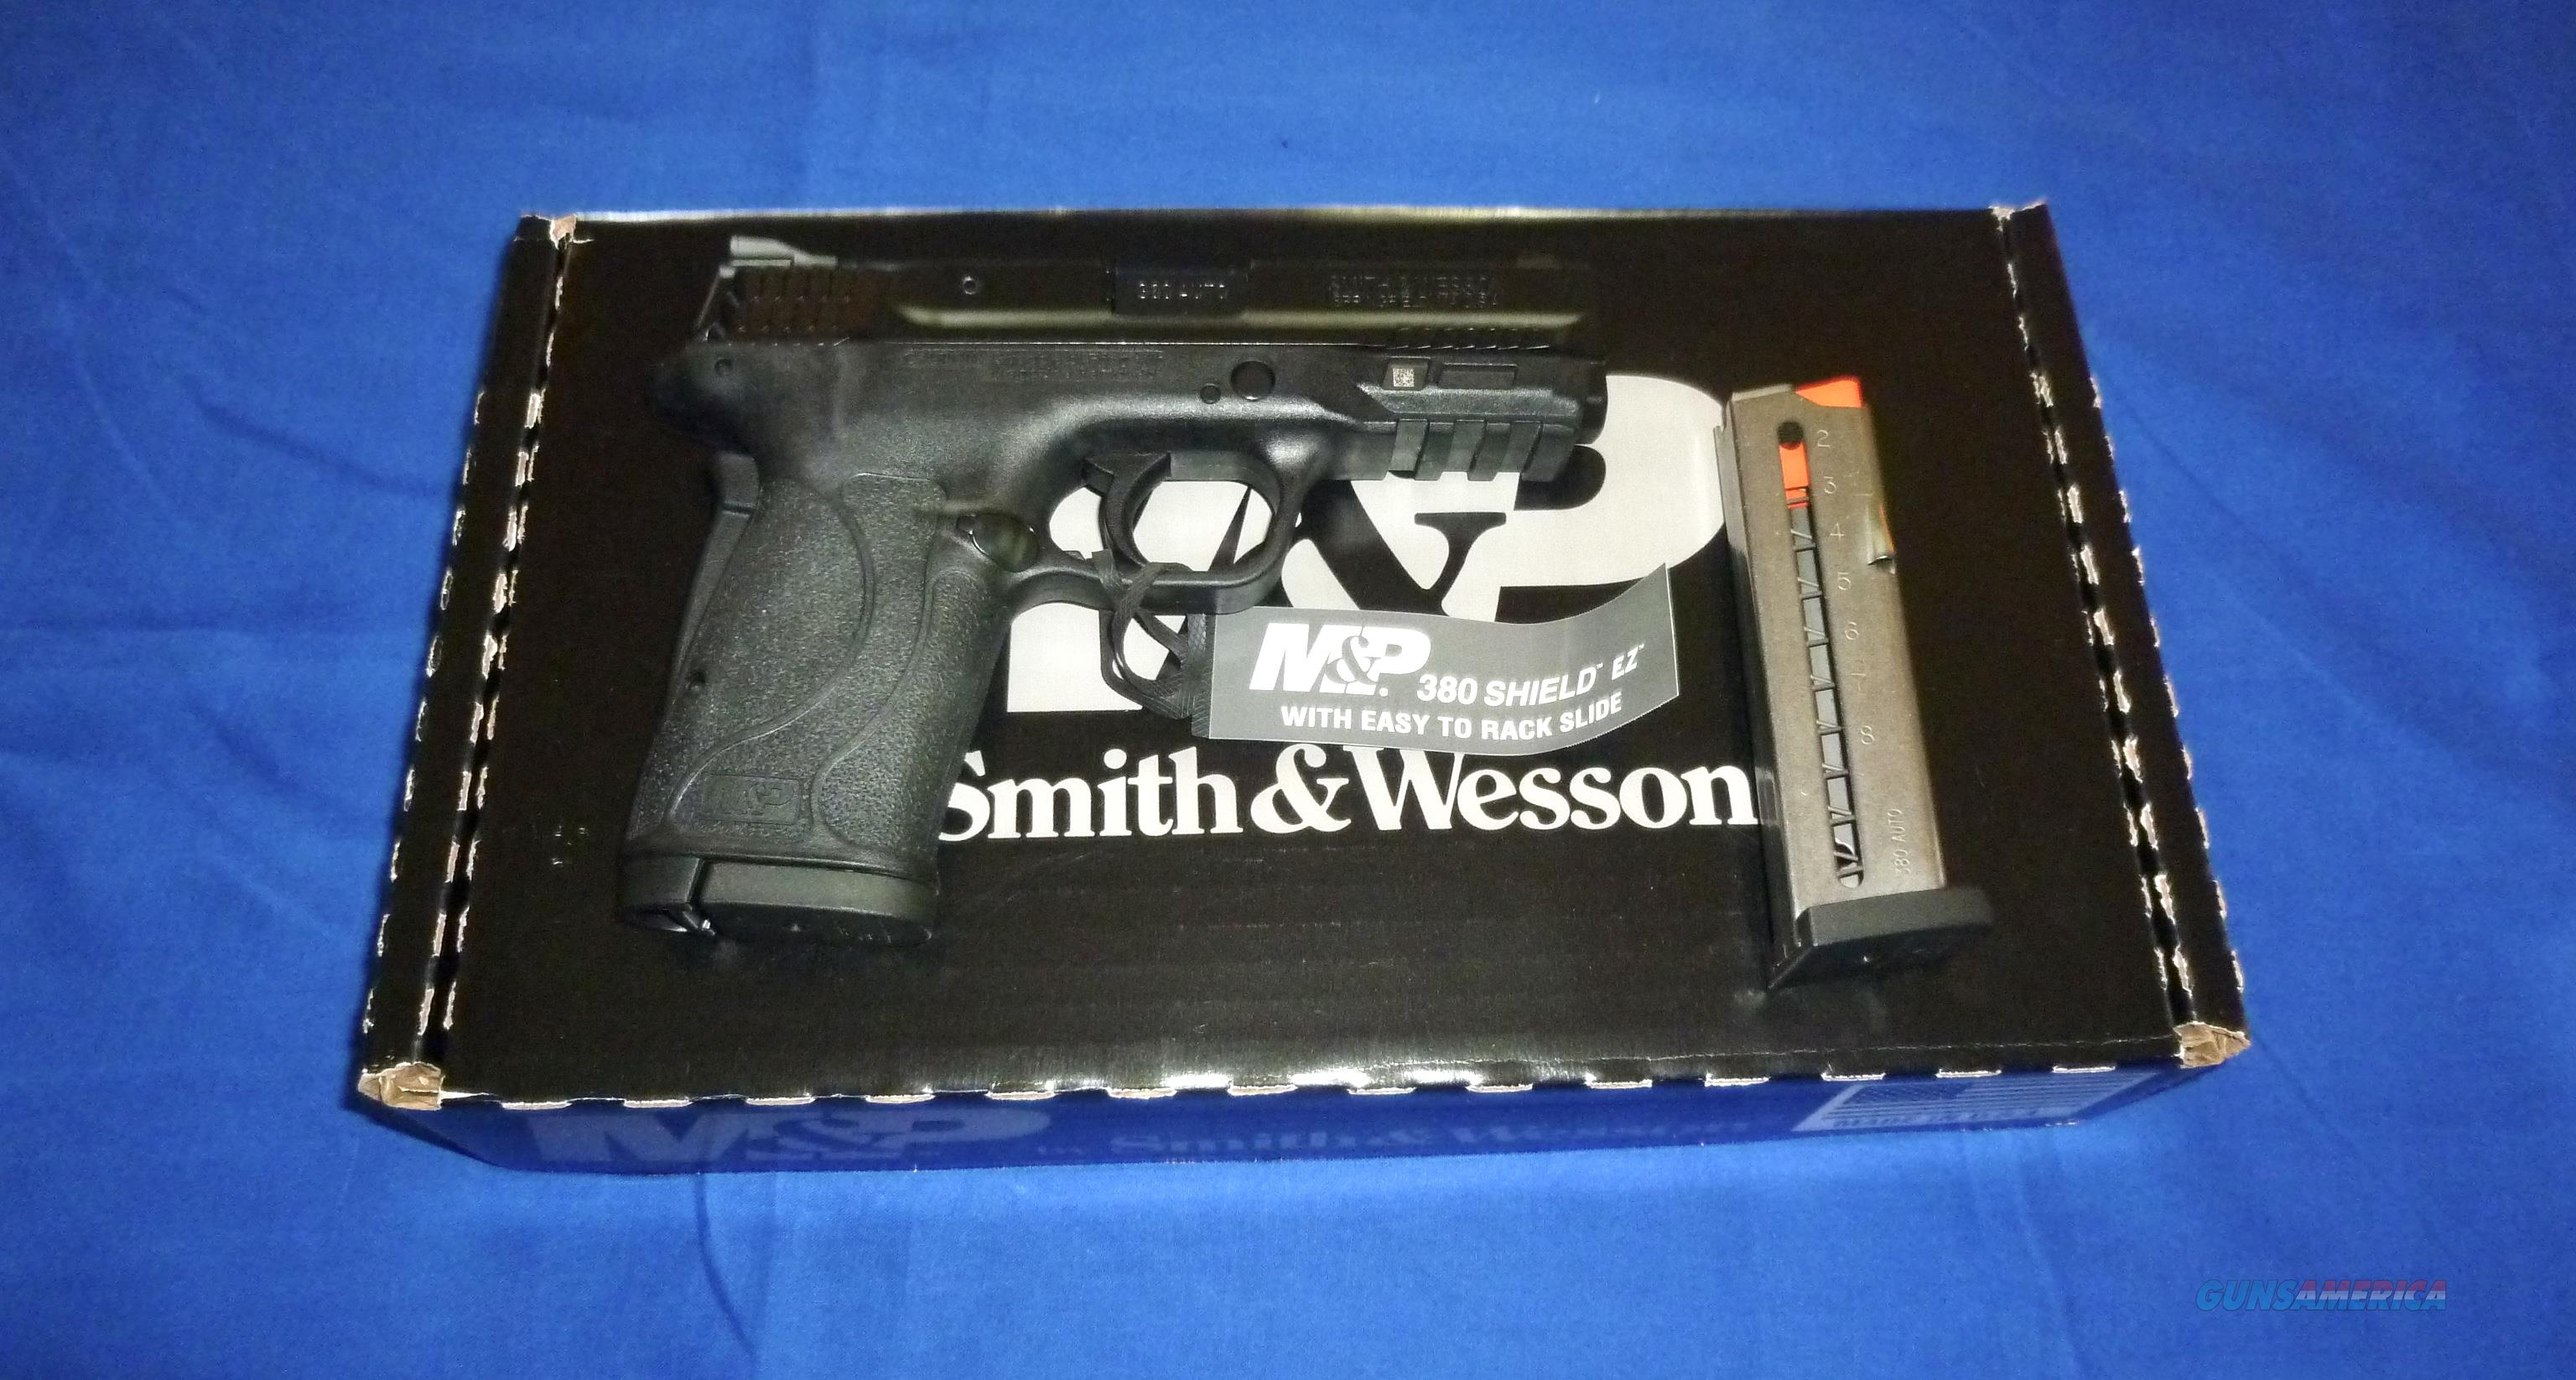 SMITH & WESSON M&P 380 SHIELD EZ. M2.0 NTS PISTO  Guns > Pistols > Smith & Wesson Pistols - Autos > Polymer Frame